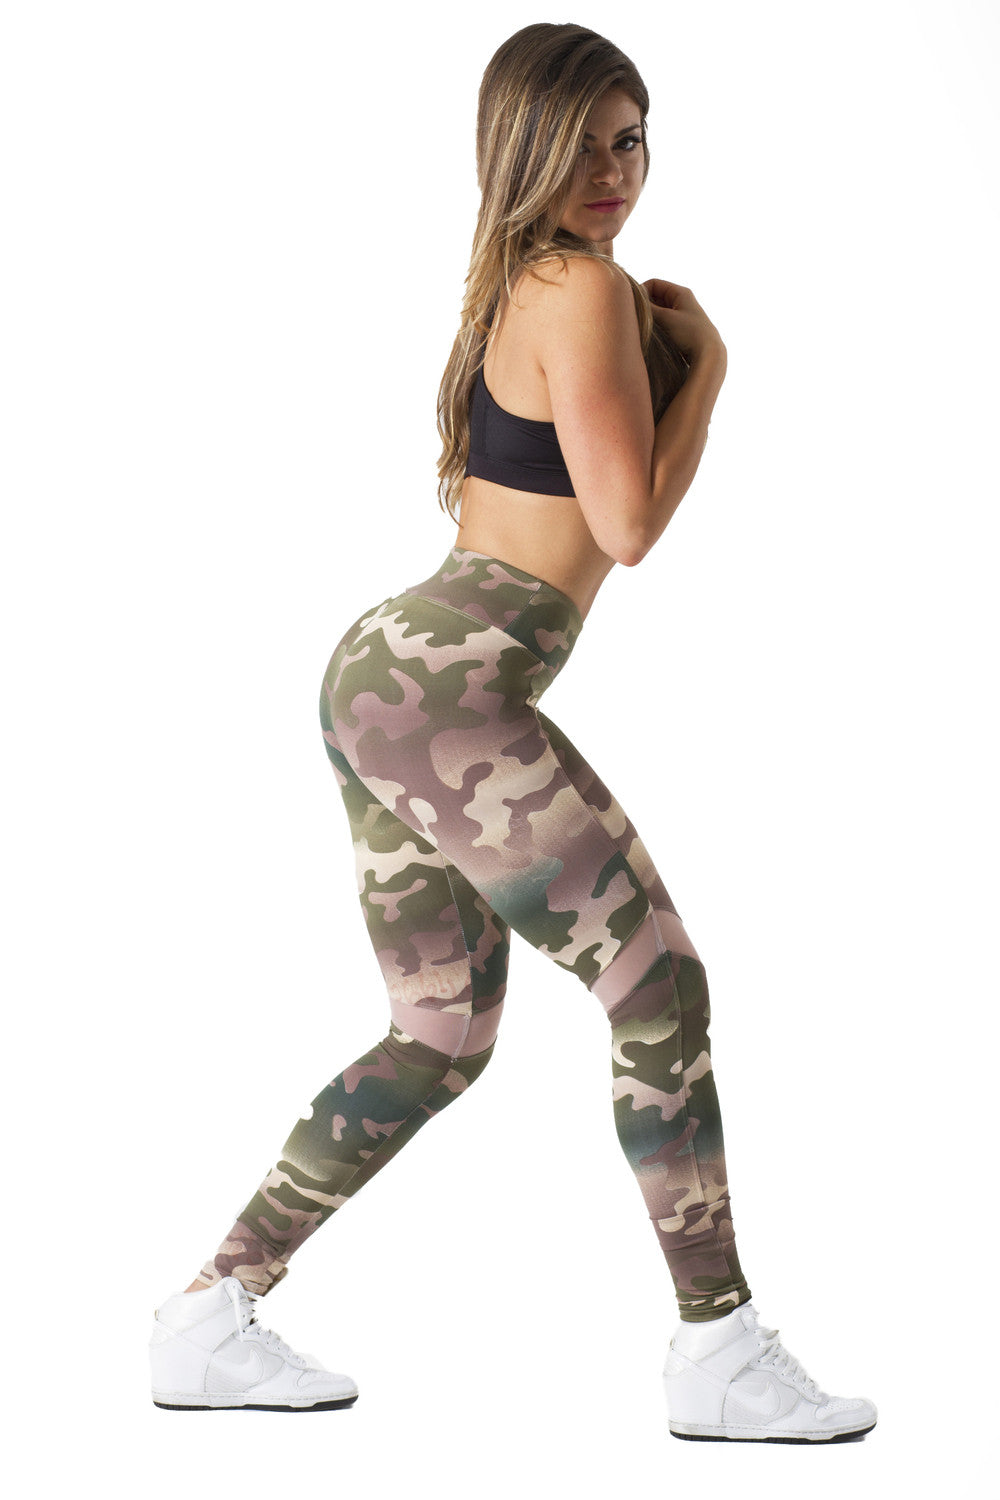 CAMO FREEDOM ARROW MESH LEGGINGS